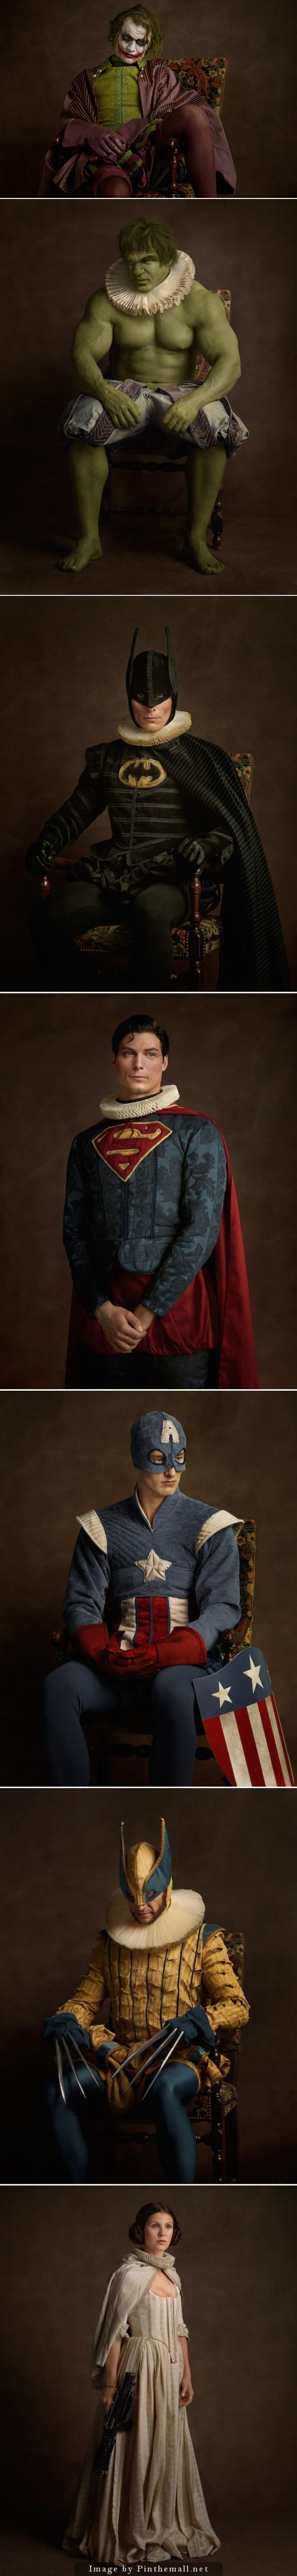 the attention to detail on these are incredible photographer the attention to detail on these are incredible photographer sacha goldberger<<< did they just throw leia in there this is great